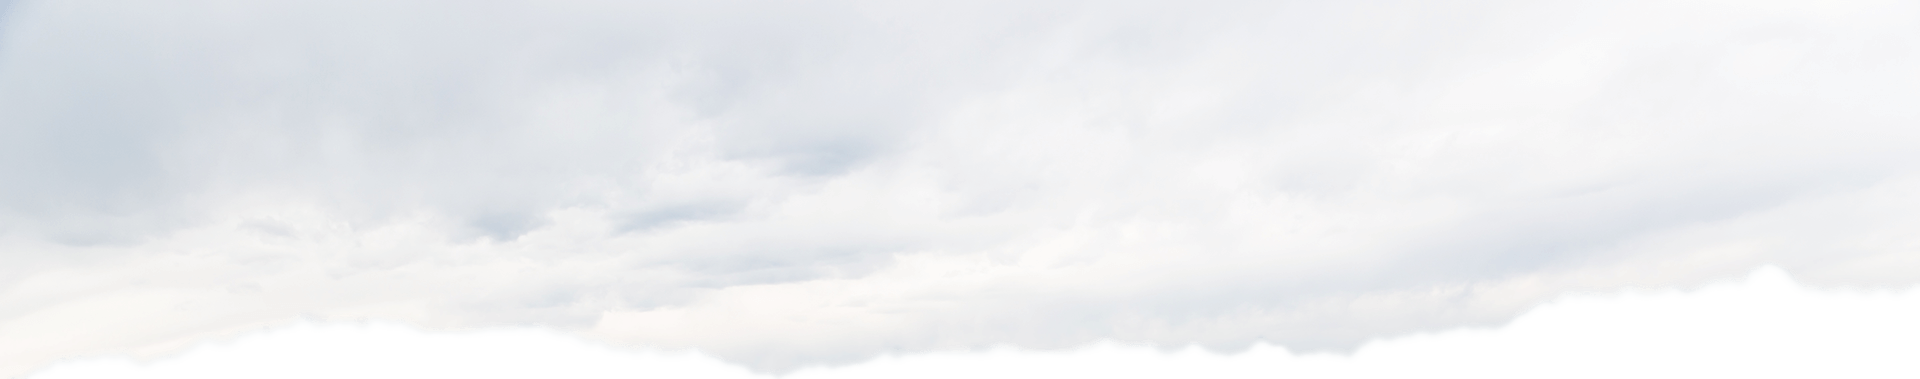 mountain-top-2.png